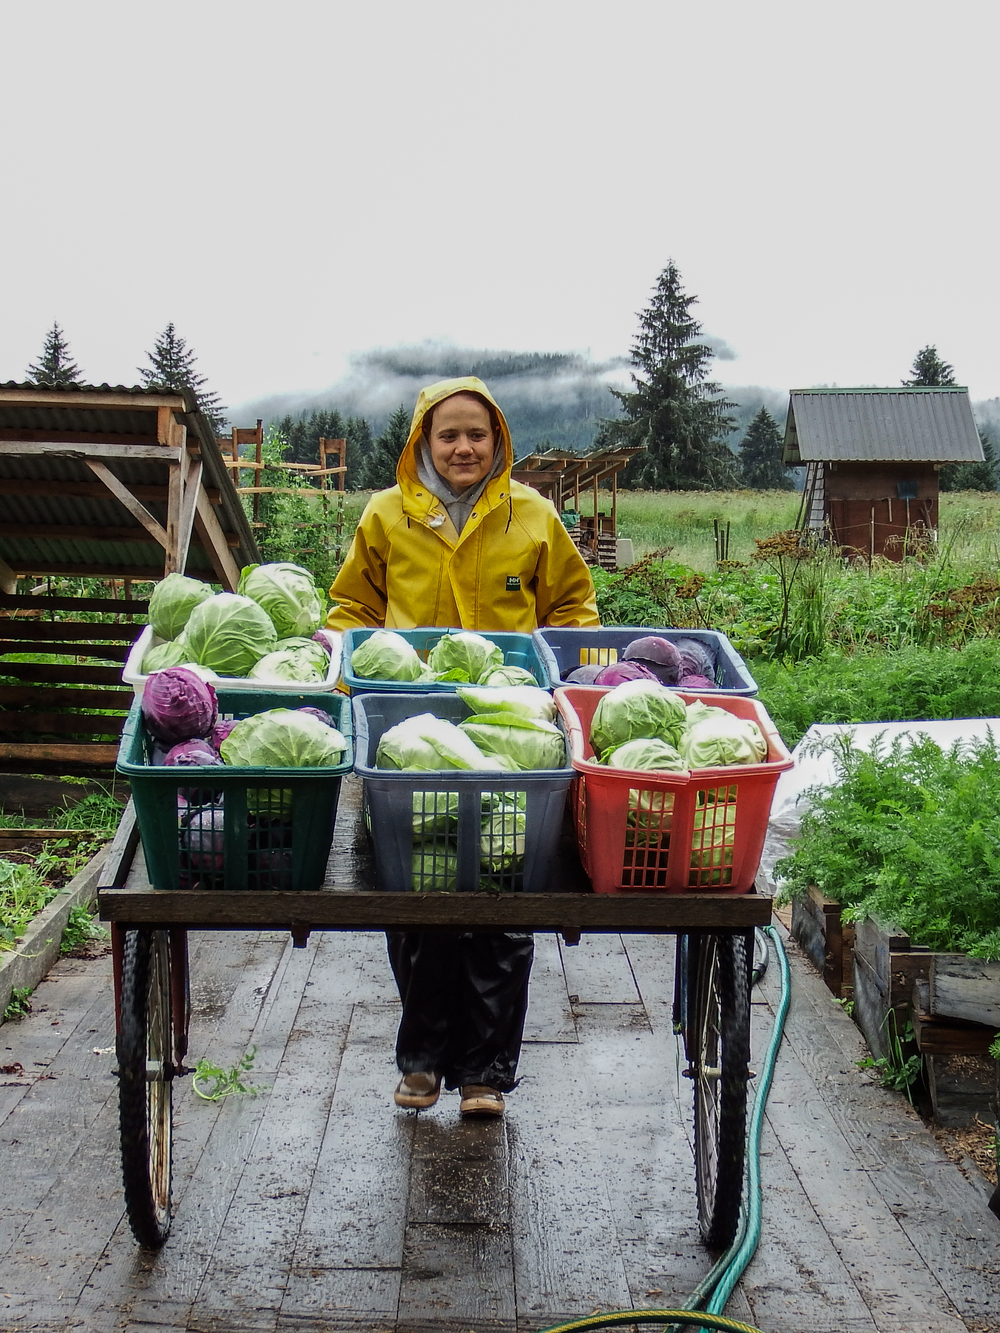 Marja pushes a cart full of freshly picked cabbages. The cart is made of old mountain bike tires and is good for pushing vegetables and materials around the farm's (sometimes rough) pathways. Photo by Matt Kern.